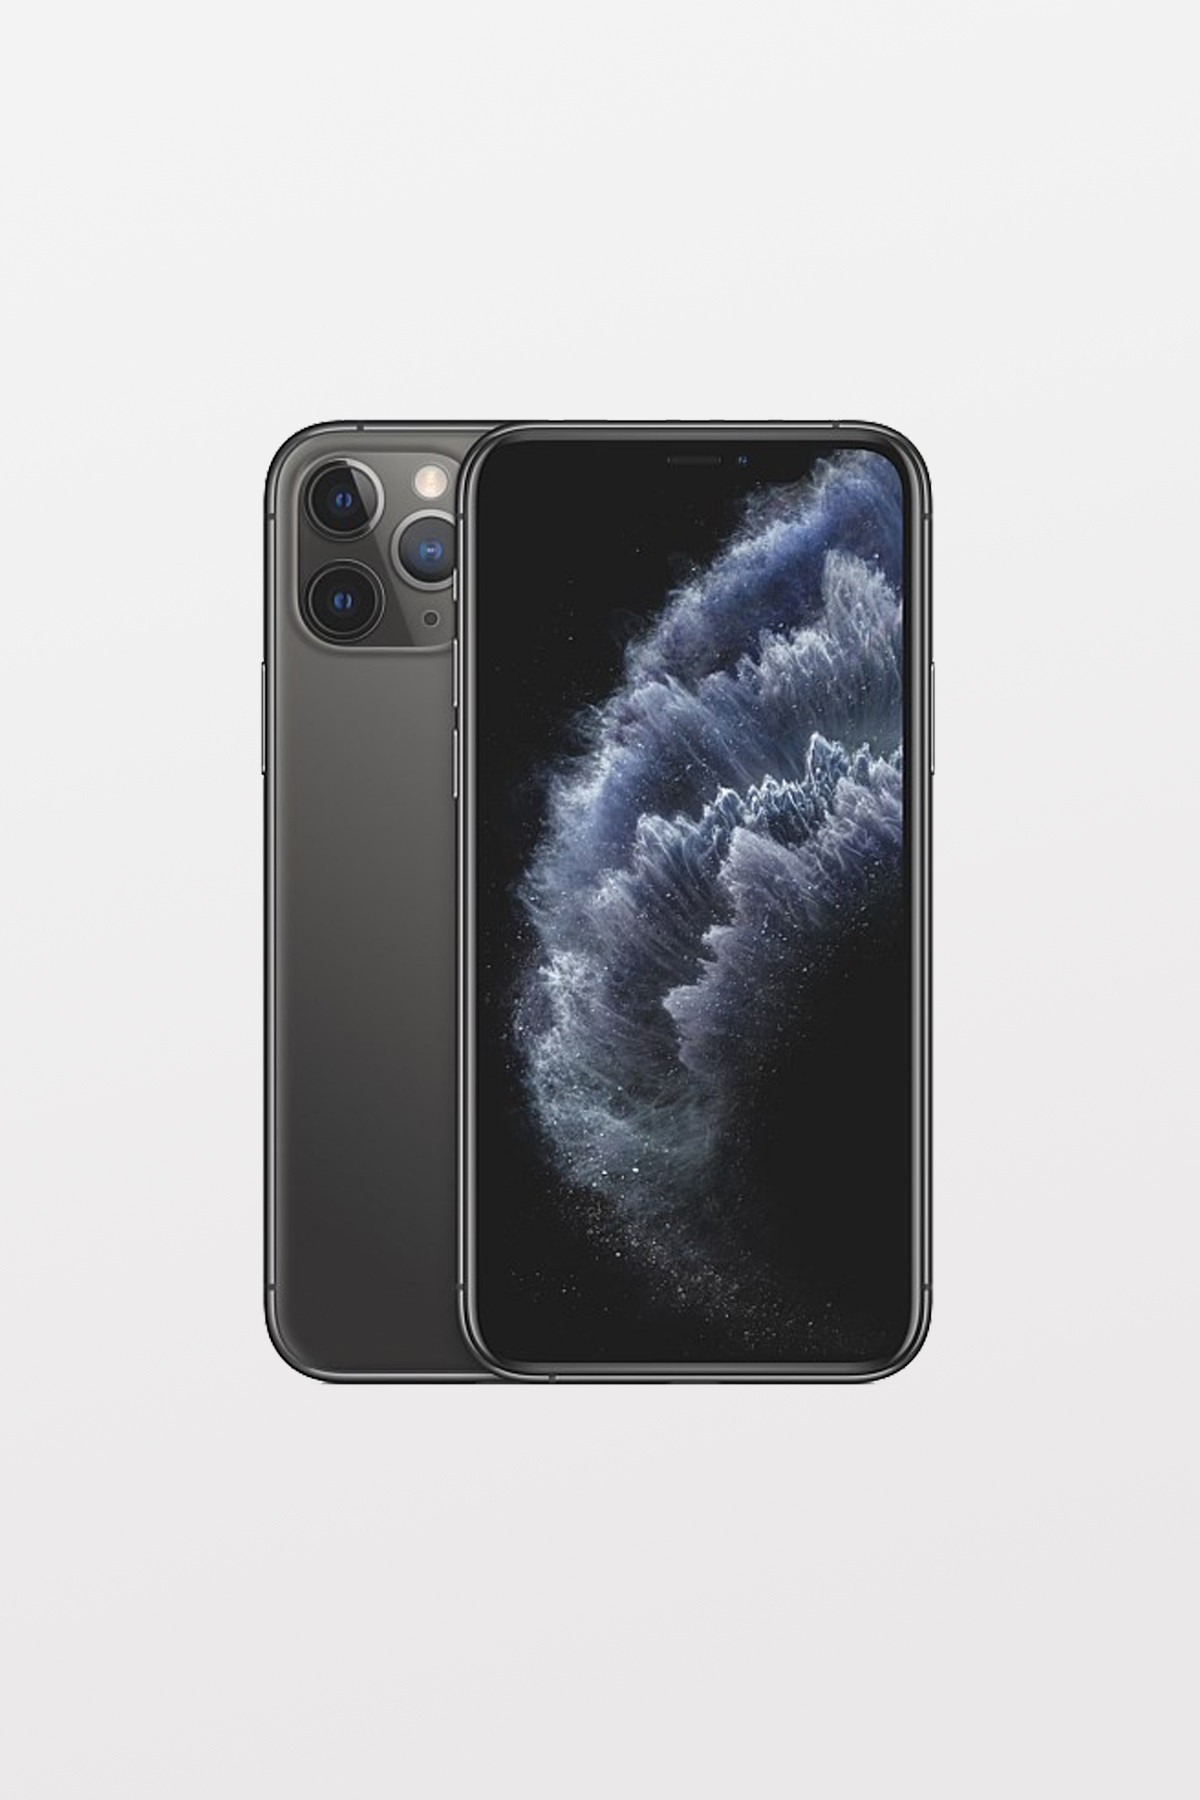 iPhone 11 Pro 512GB - Space Grey - Scratch and Dent